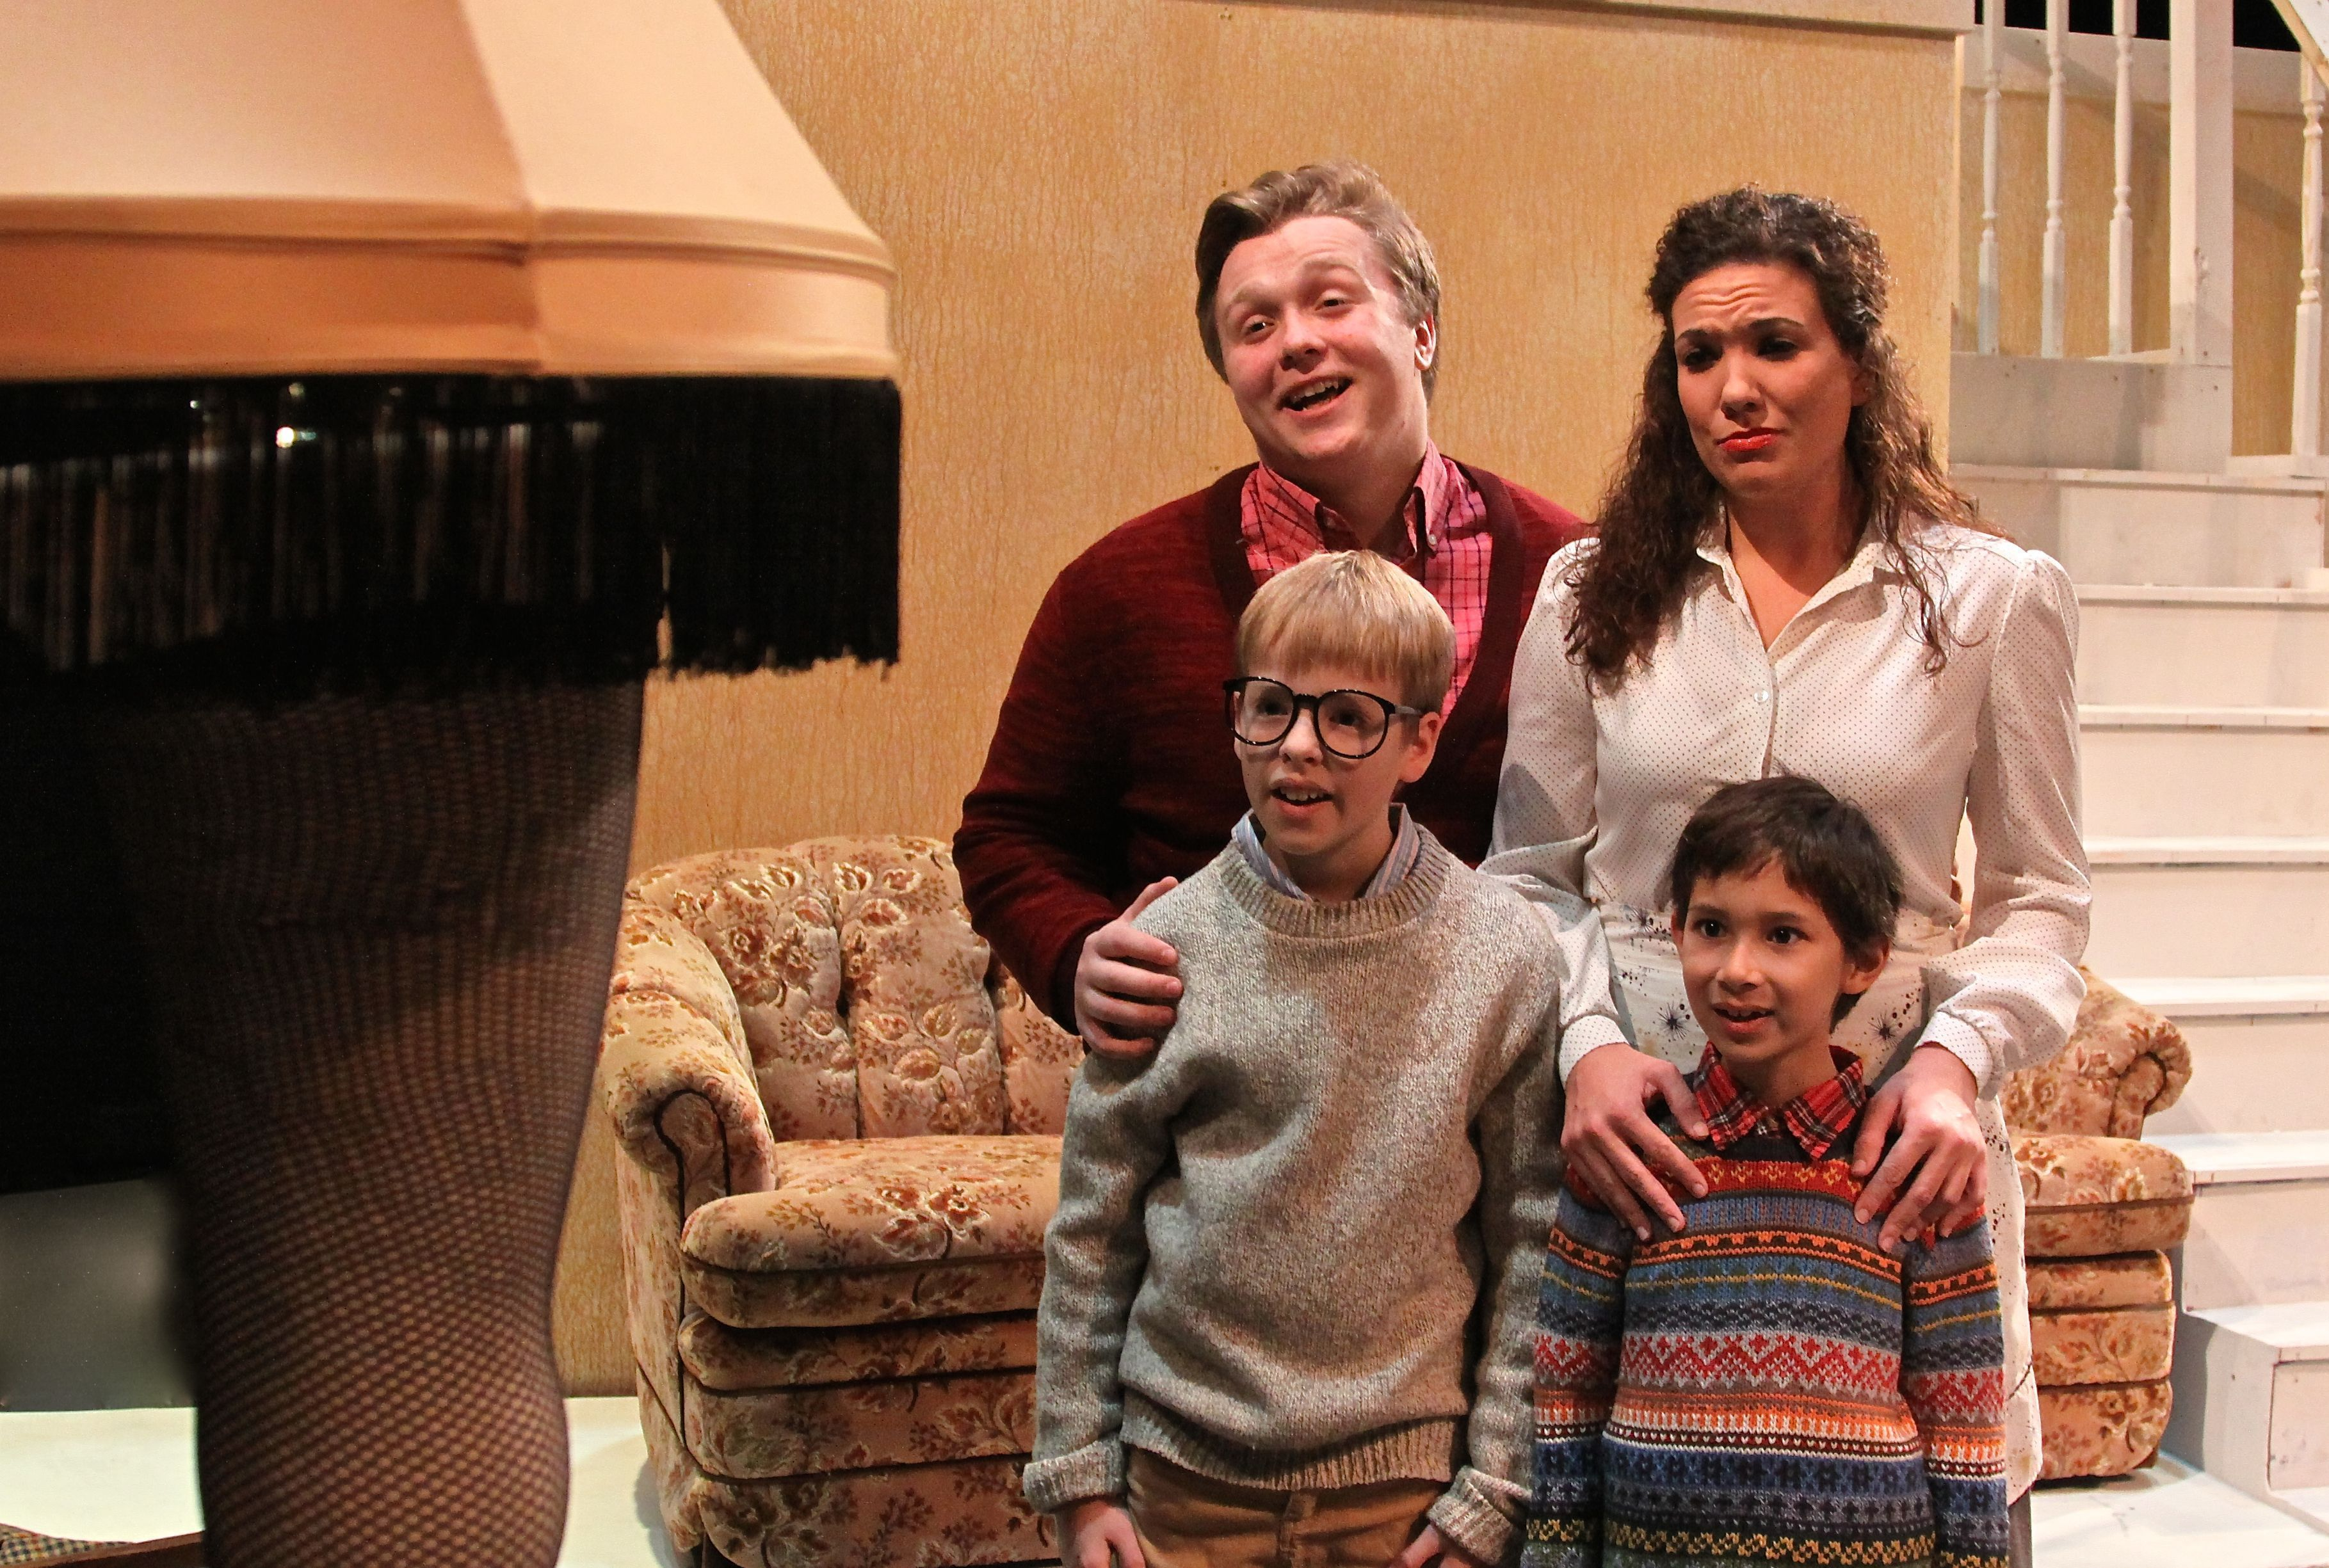 A Christmas Story Images